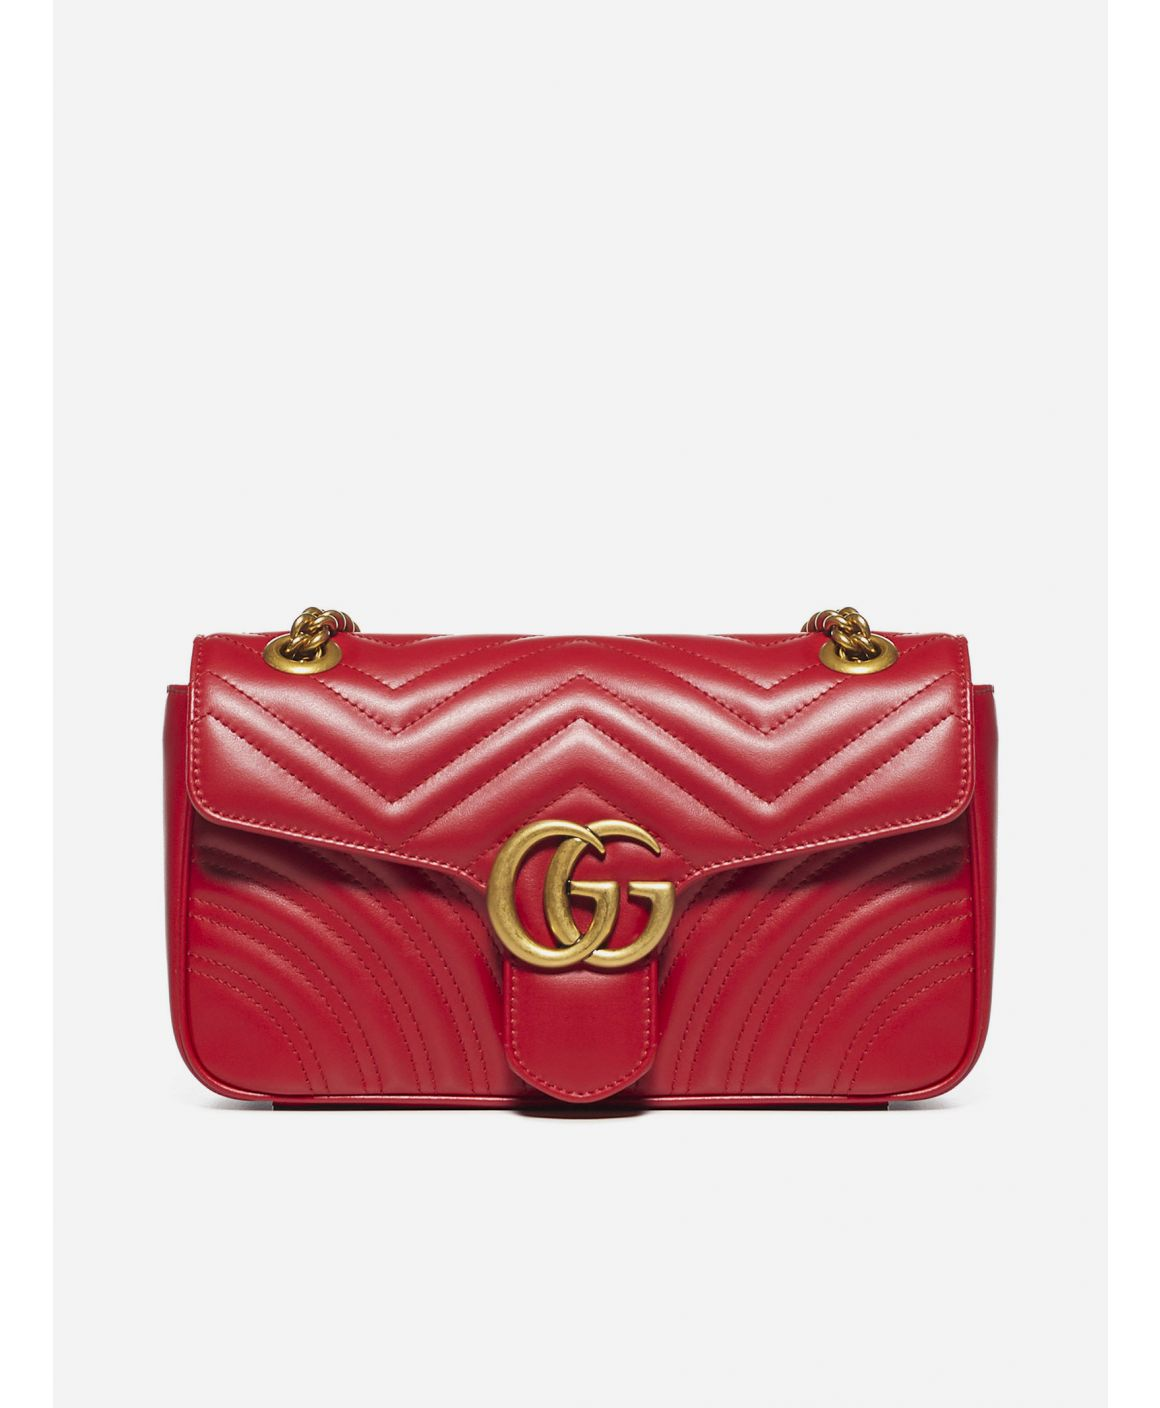 GG Marmont quilted leather small bag